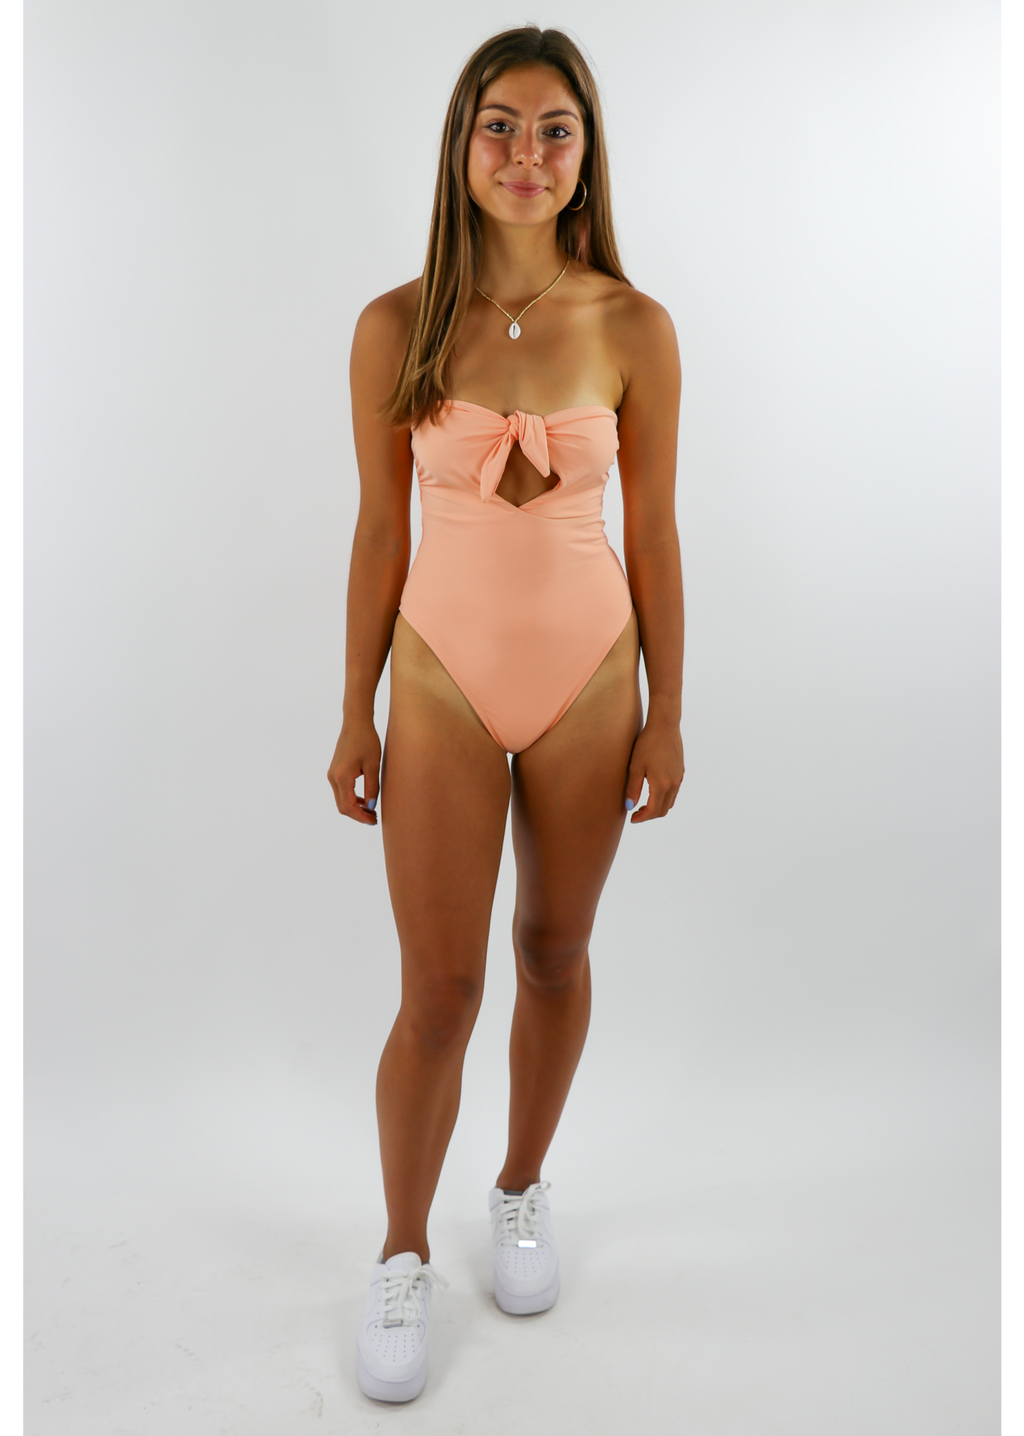 Set Sail One Piece ★ Apricot - Rock N Rags